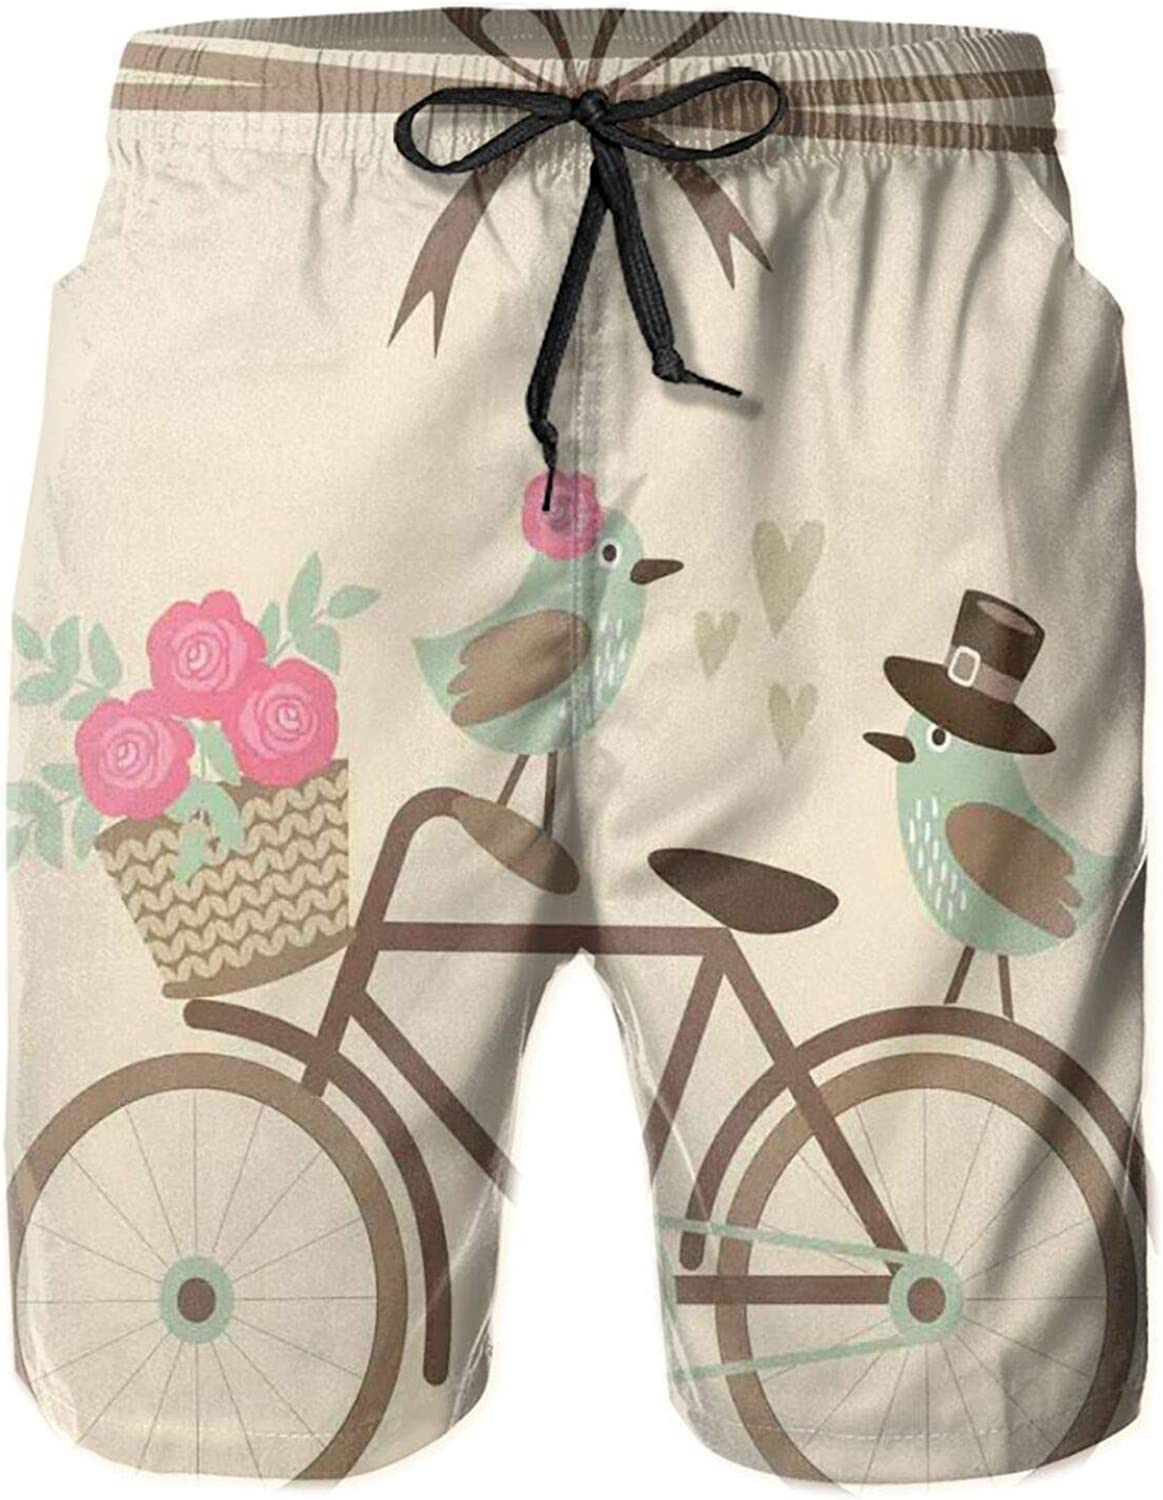 Summer Shorts for Men,and Groom Birds On Casual Classic Fit Short Summer Beach Shorts for Men M